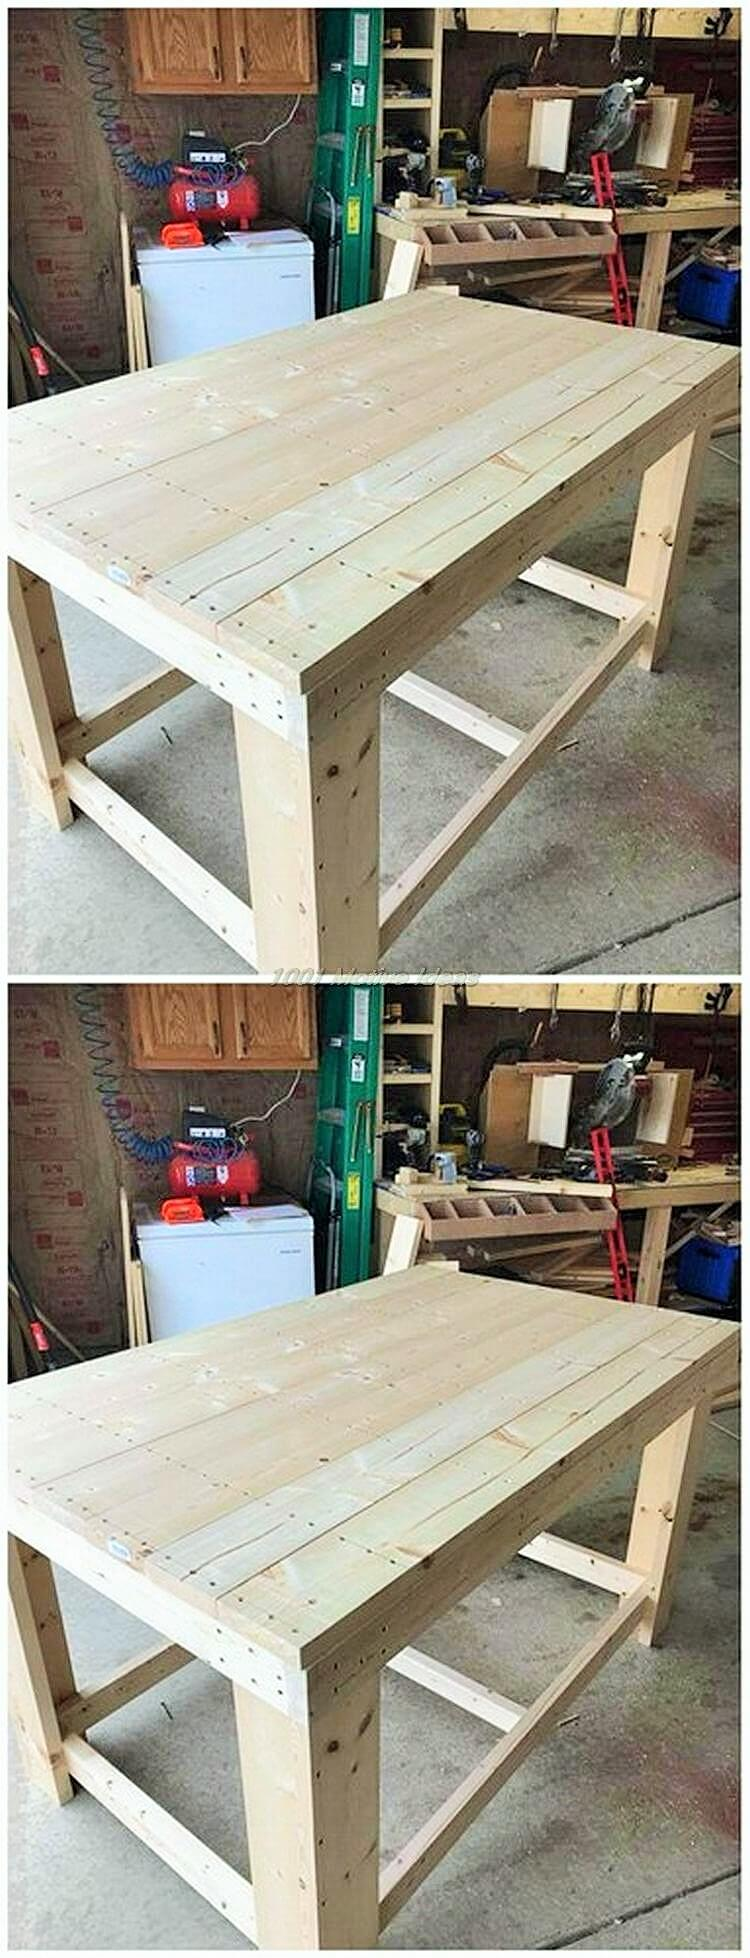 wooden-Pallet-Banch-furniture-Project-Ideas-007